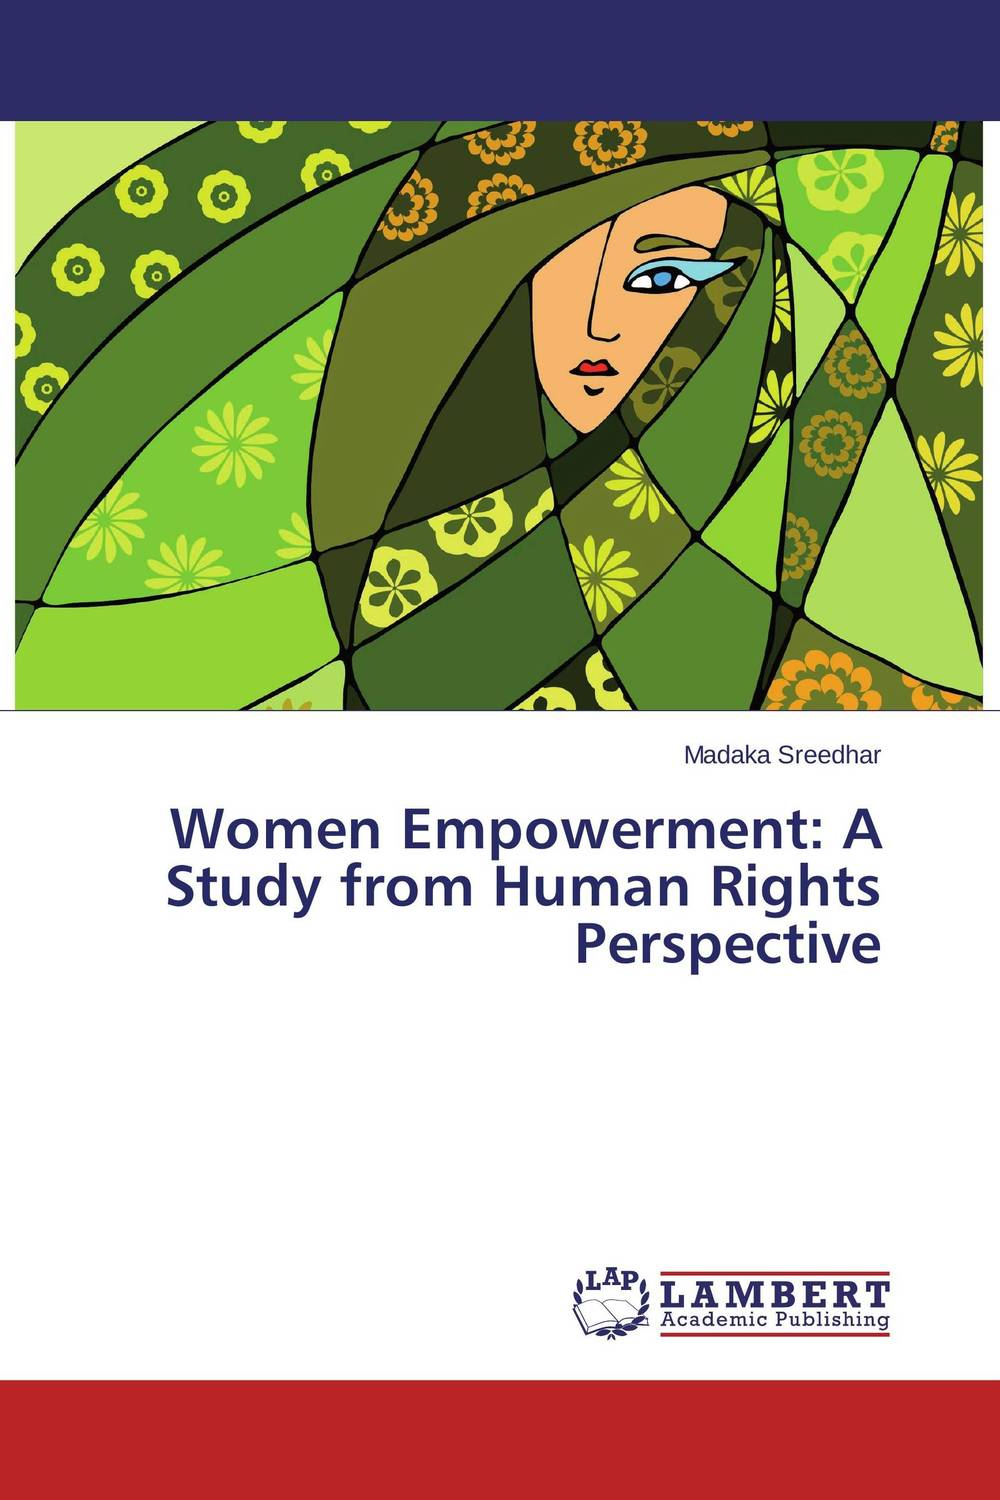 Women Empowerment: A Study from Human Rights Perspective change from a human perspective